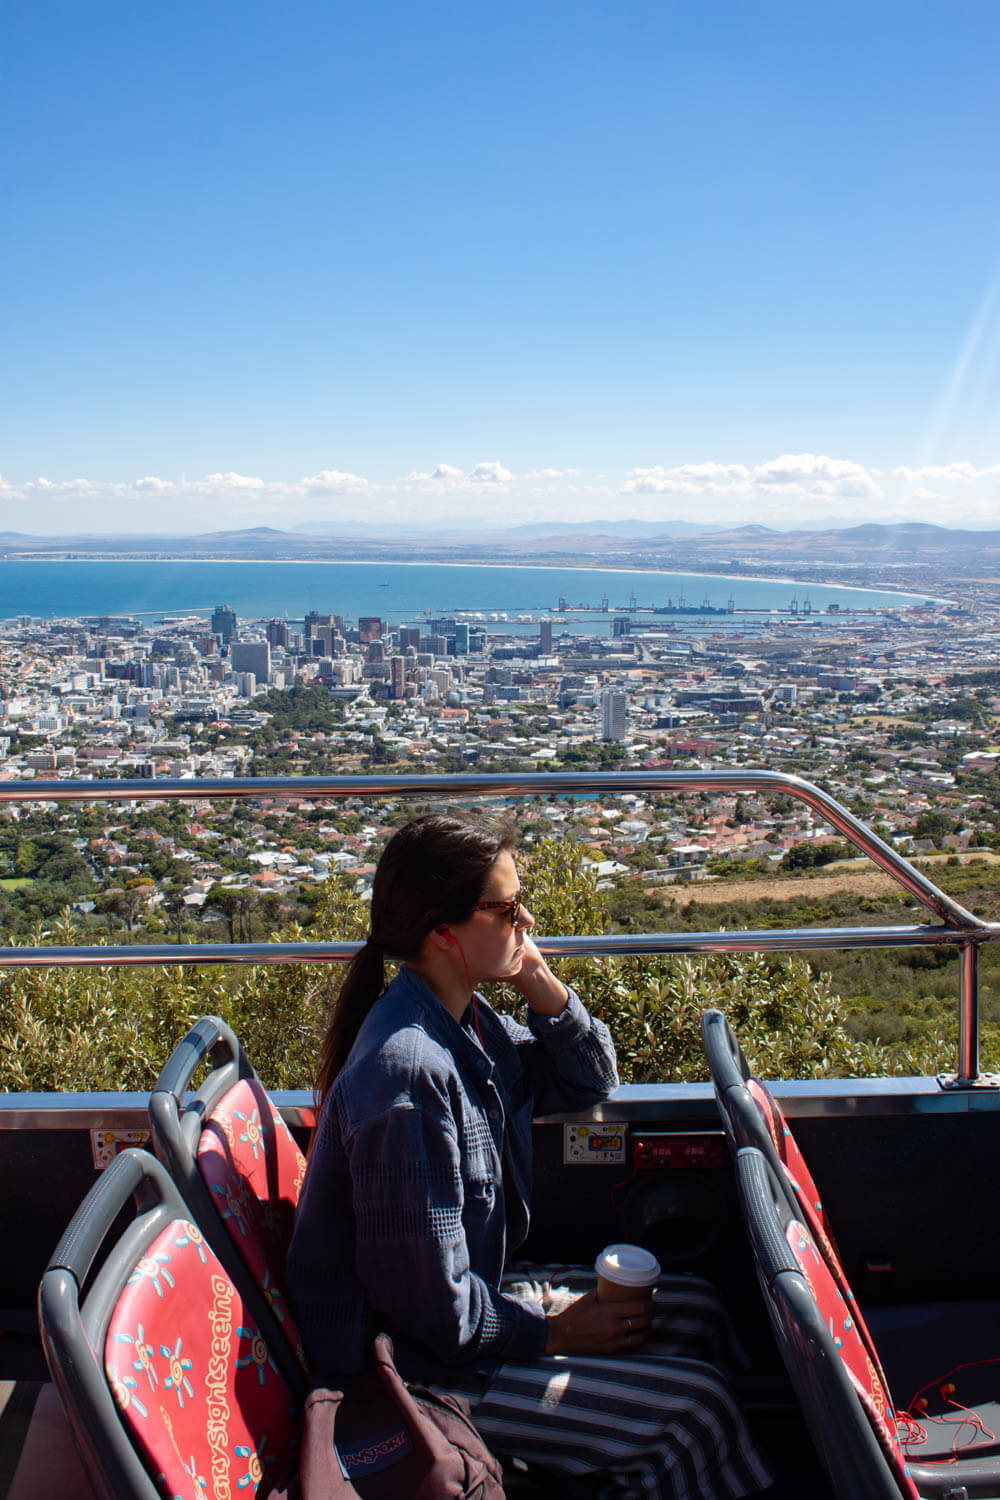 View of downtown Cape Town from the Table Mountain bus stop